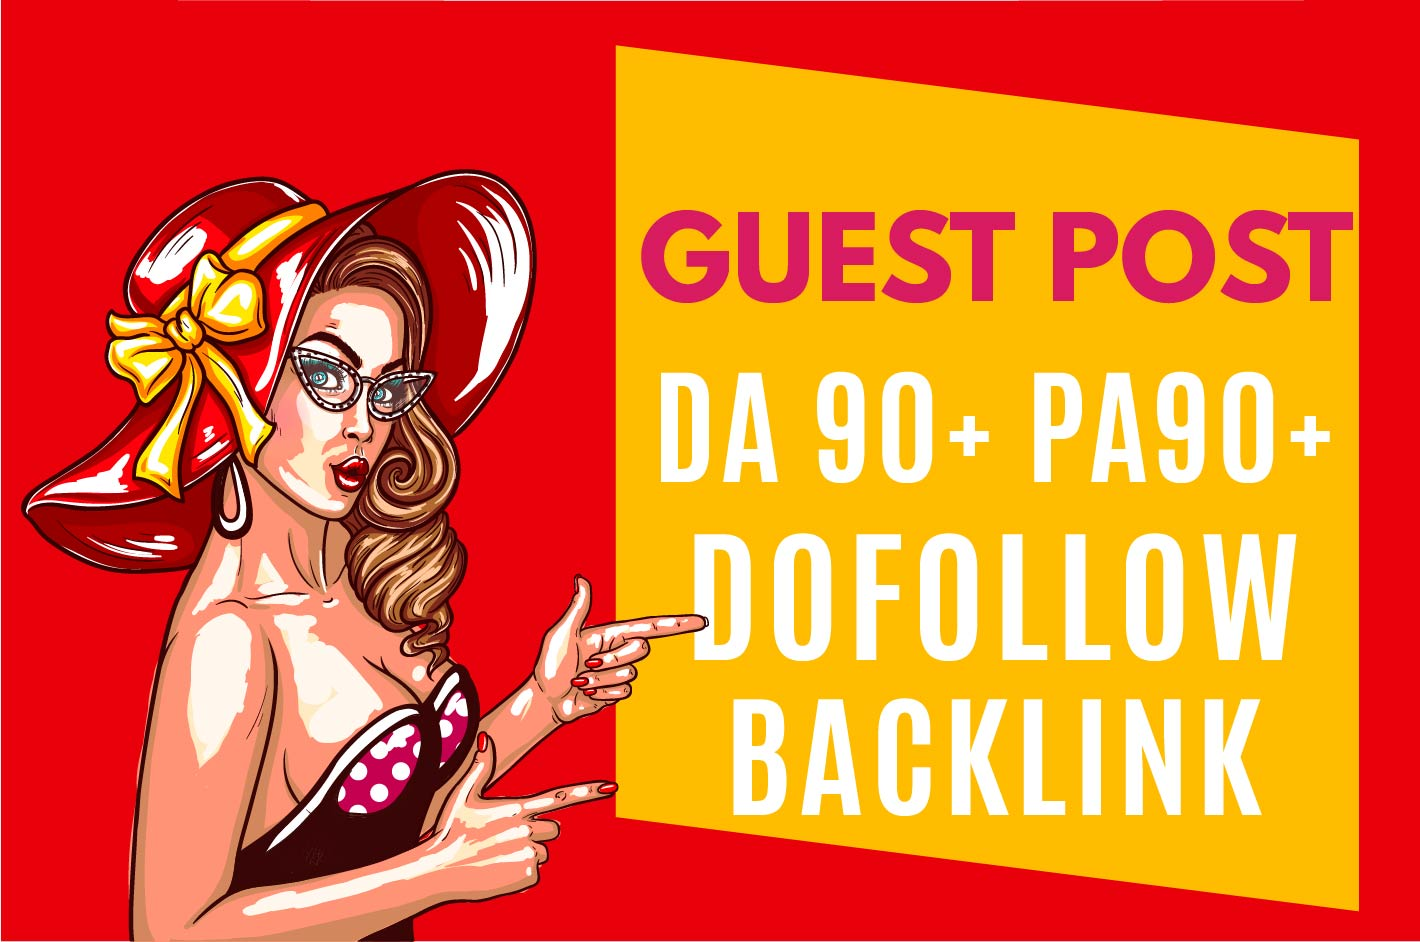 I will publish guest post on da90 site